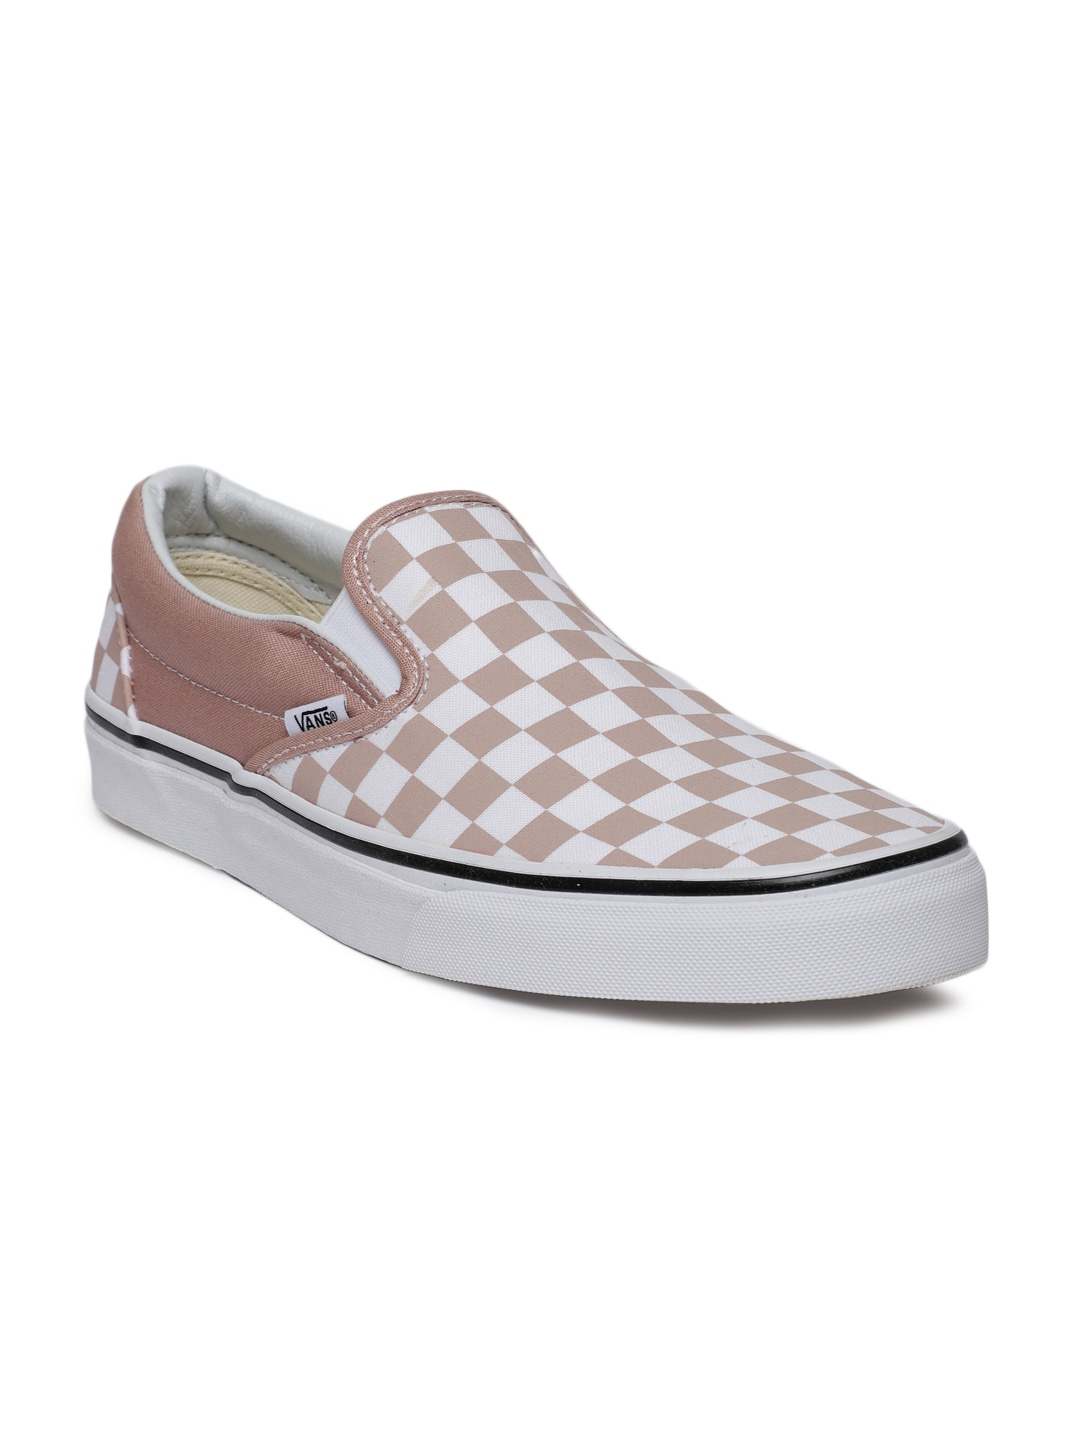 5e05dcb16d Vans Casual Shoes - Buy Vans Casual Shoes Online in India